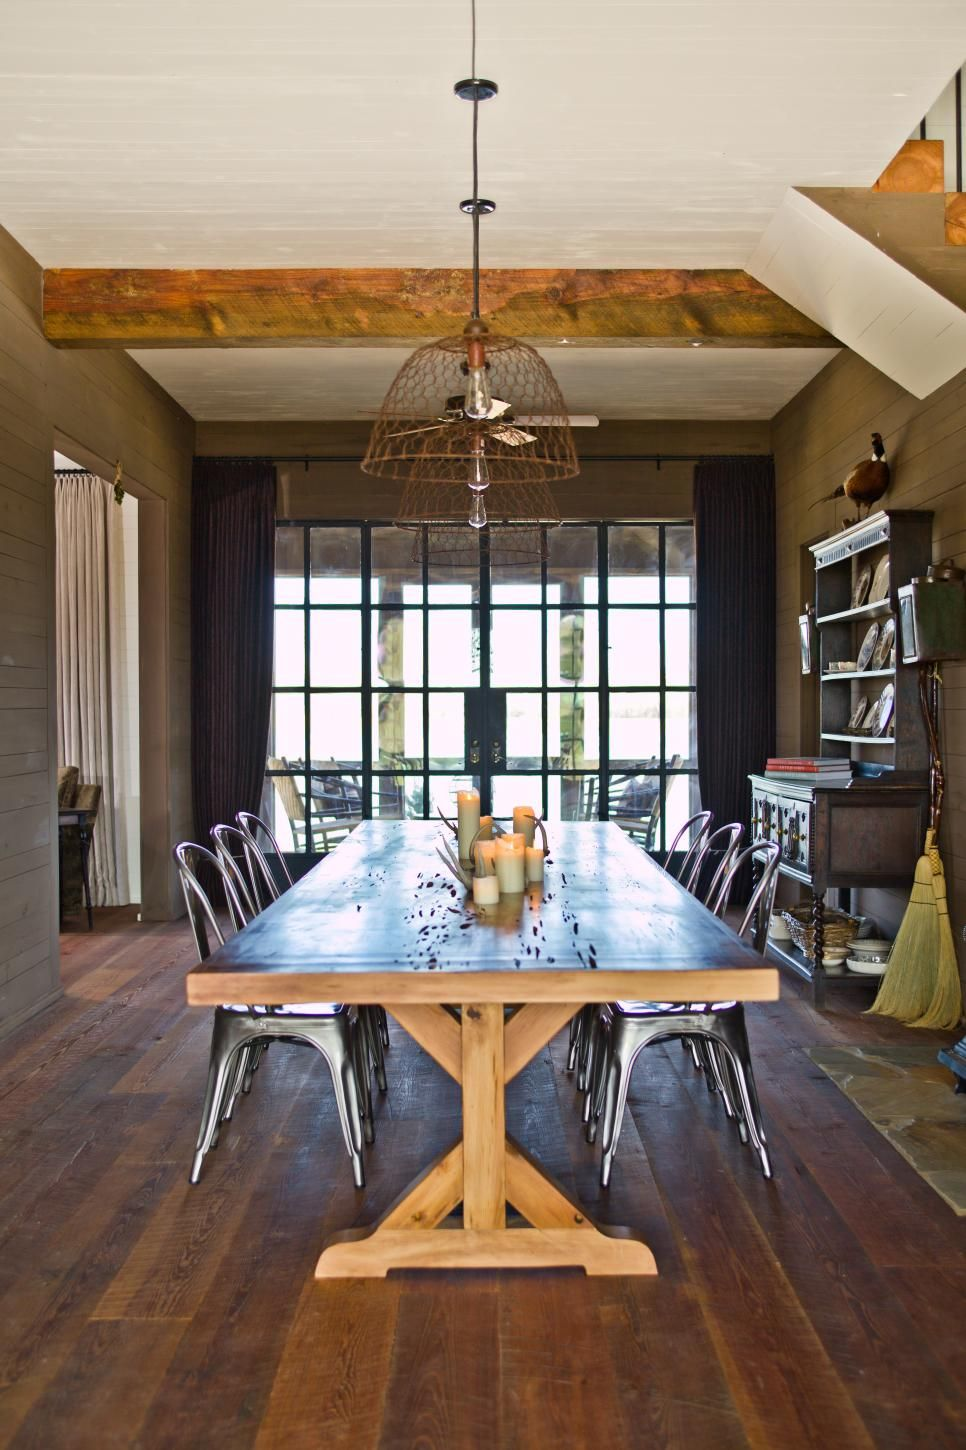 Farmhouse Set Apart by Unique Industrial-Country Style | Funky ...